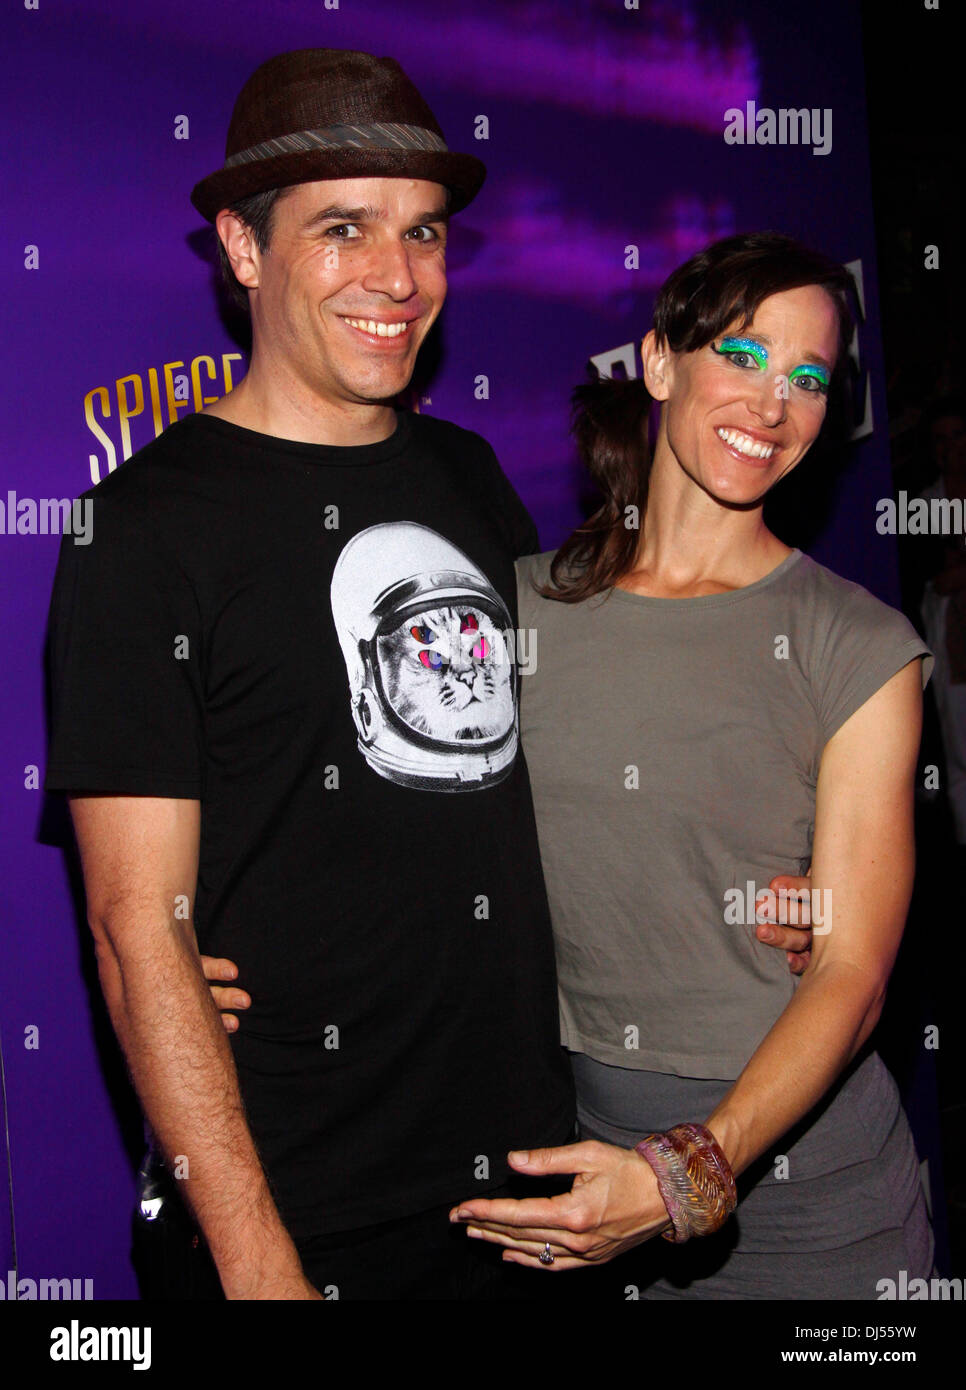 Jonathan Taylor and Anne Goldmann Opening night of Spiegelworld's 'Empire' on West 45th Street New York City, USA – 31.05.12 - Stock Image